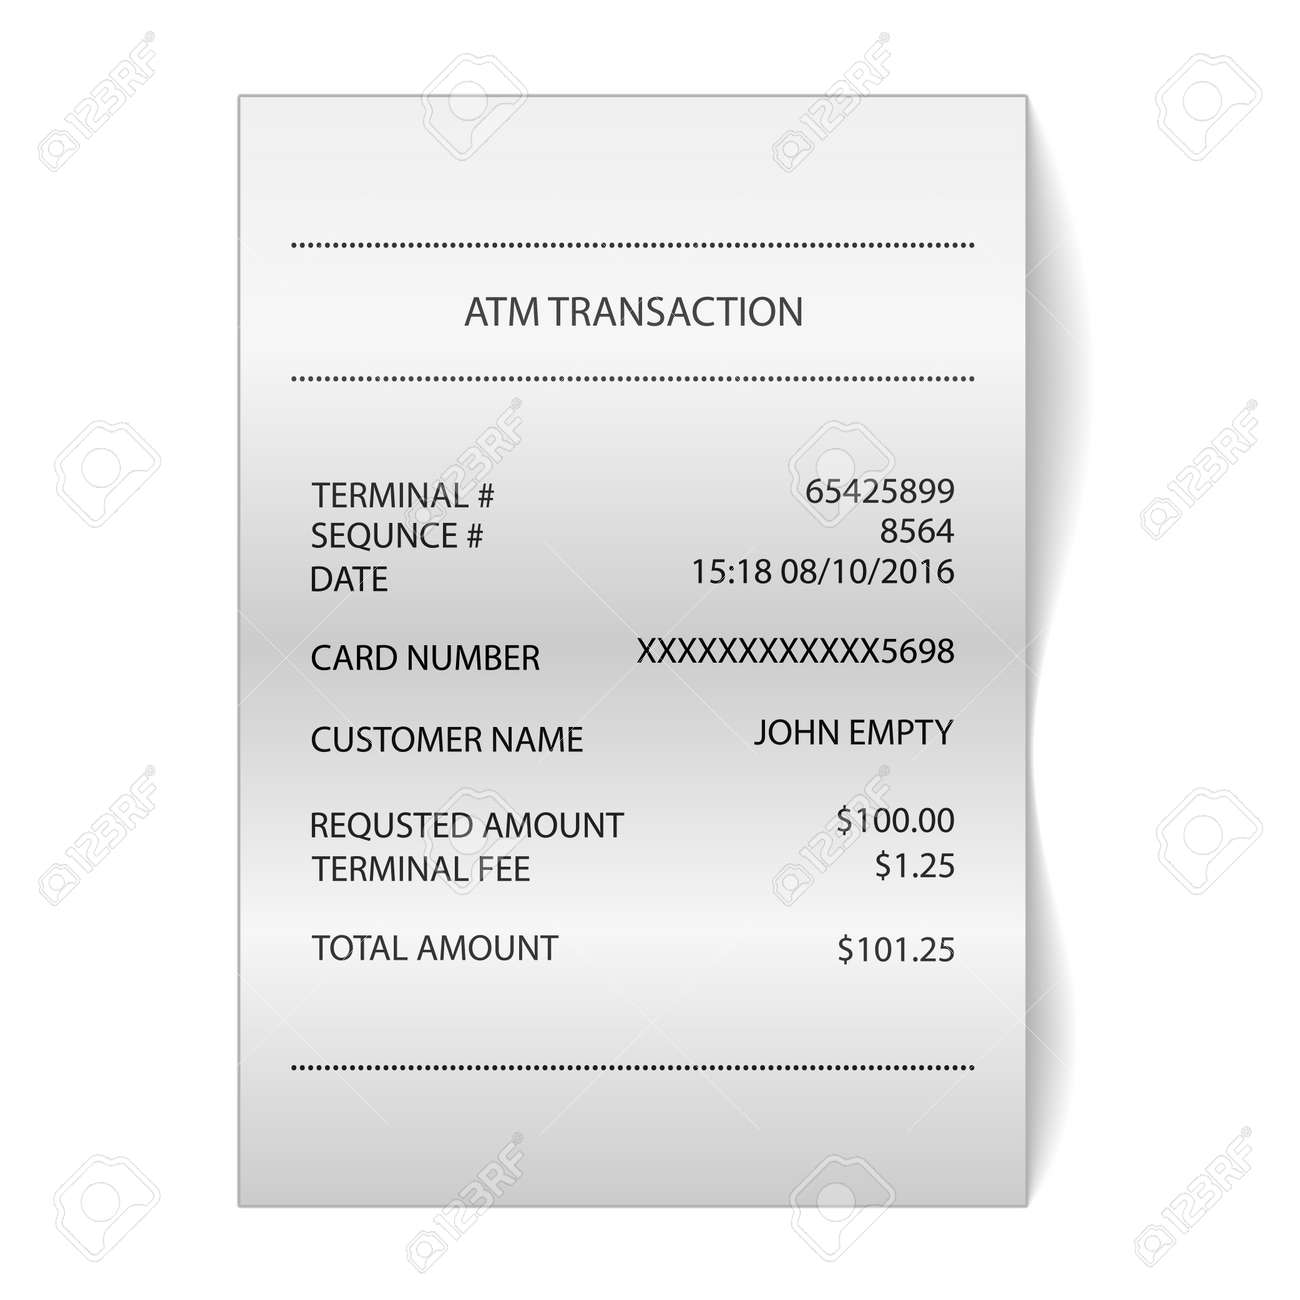 High Quality Atm Transaction Printed Paper Receipt Bill Vector Royalty Free 67968371 Atm  Transaction Printed Paper Receipt Bill